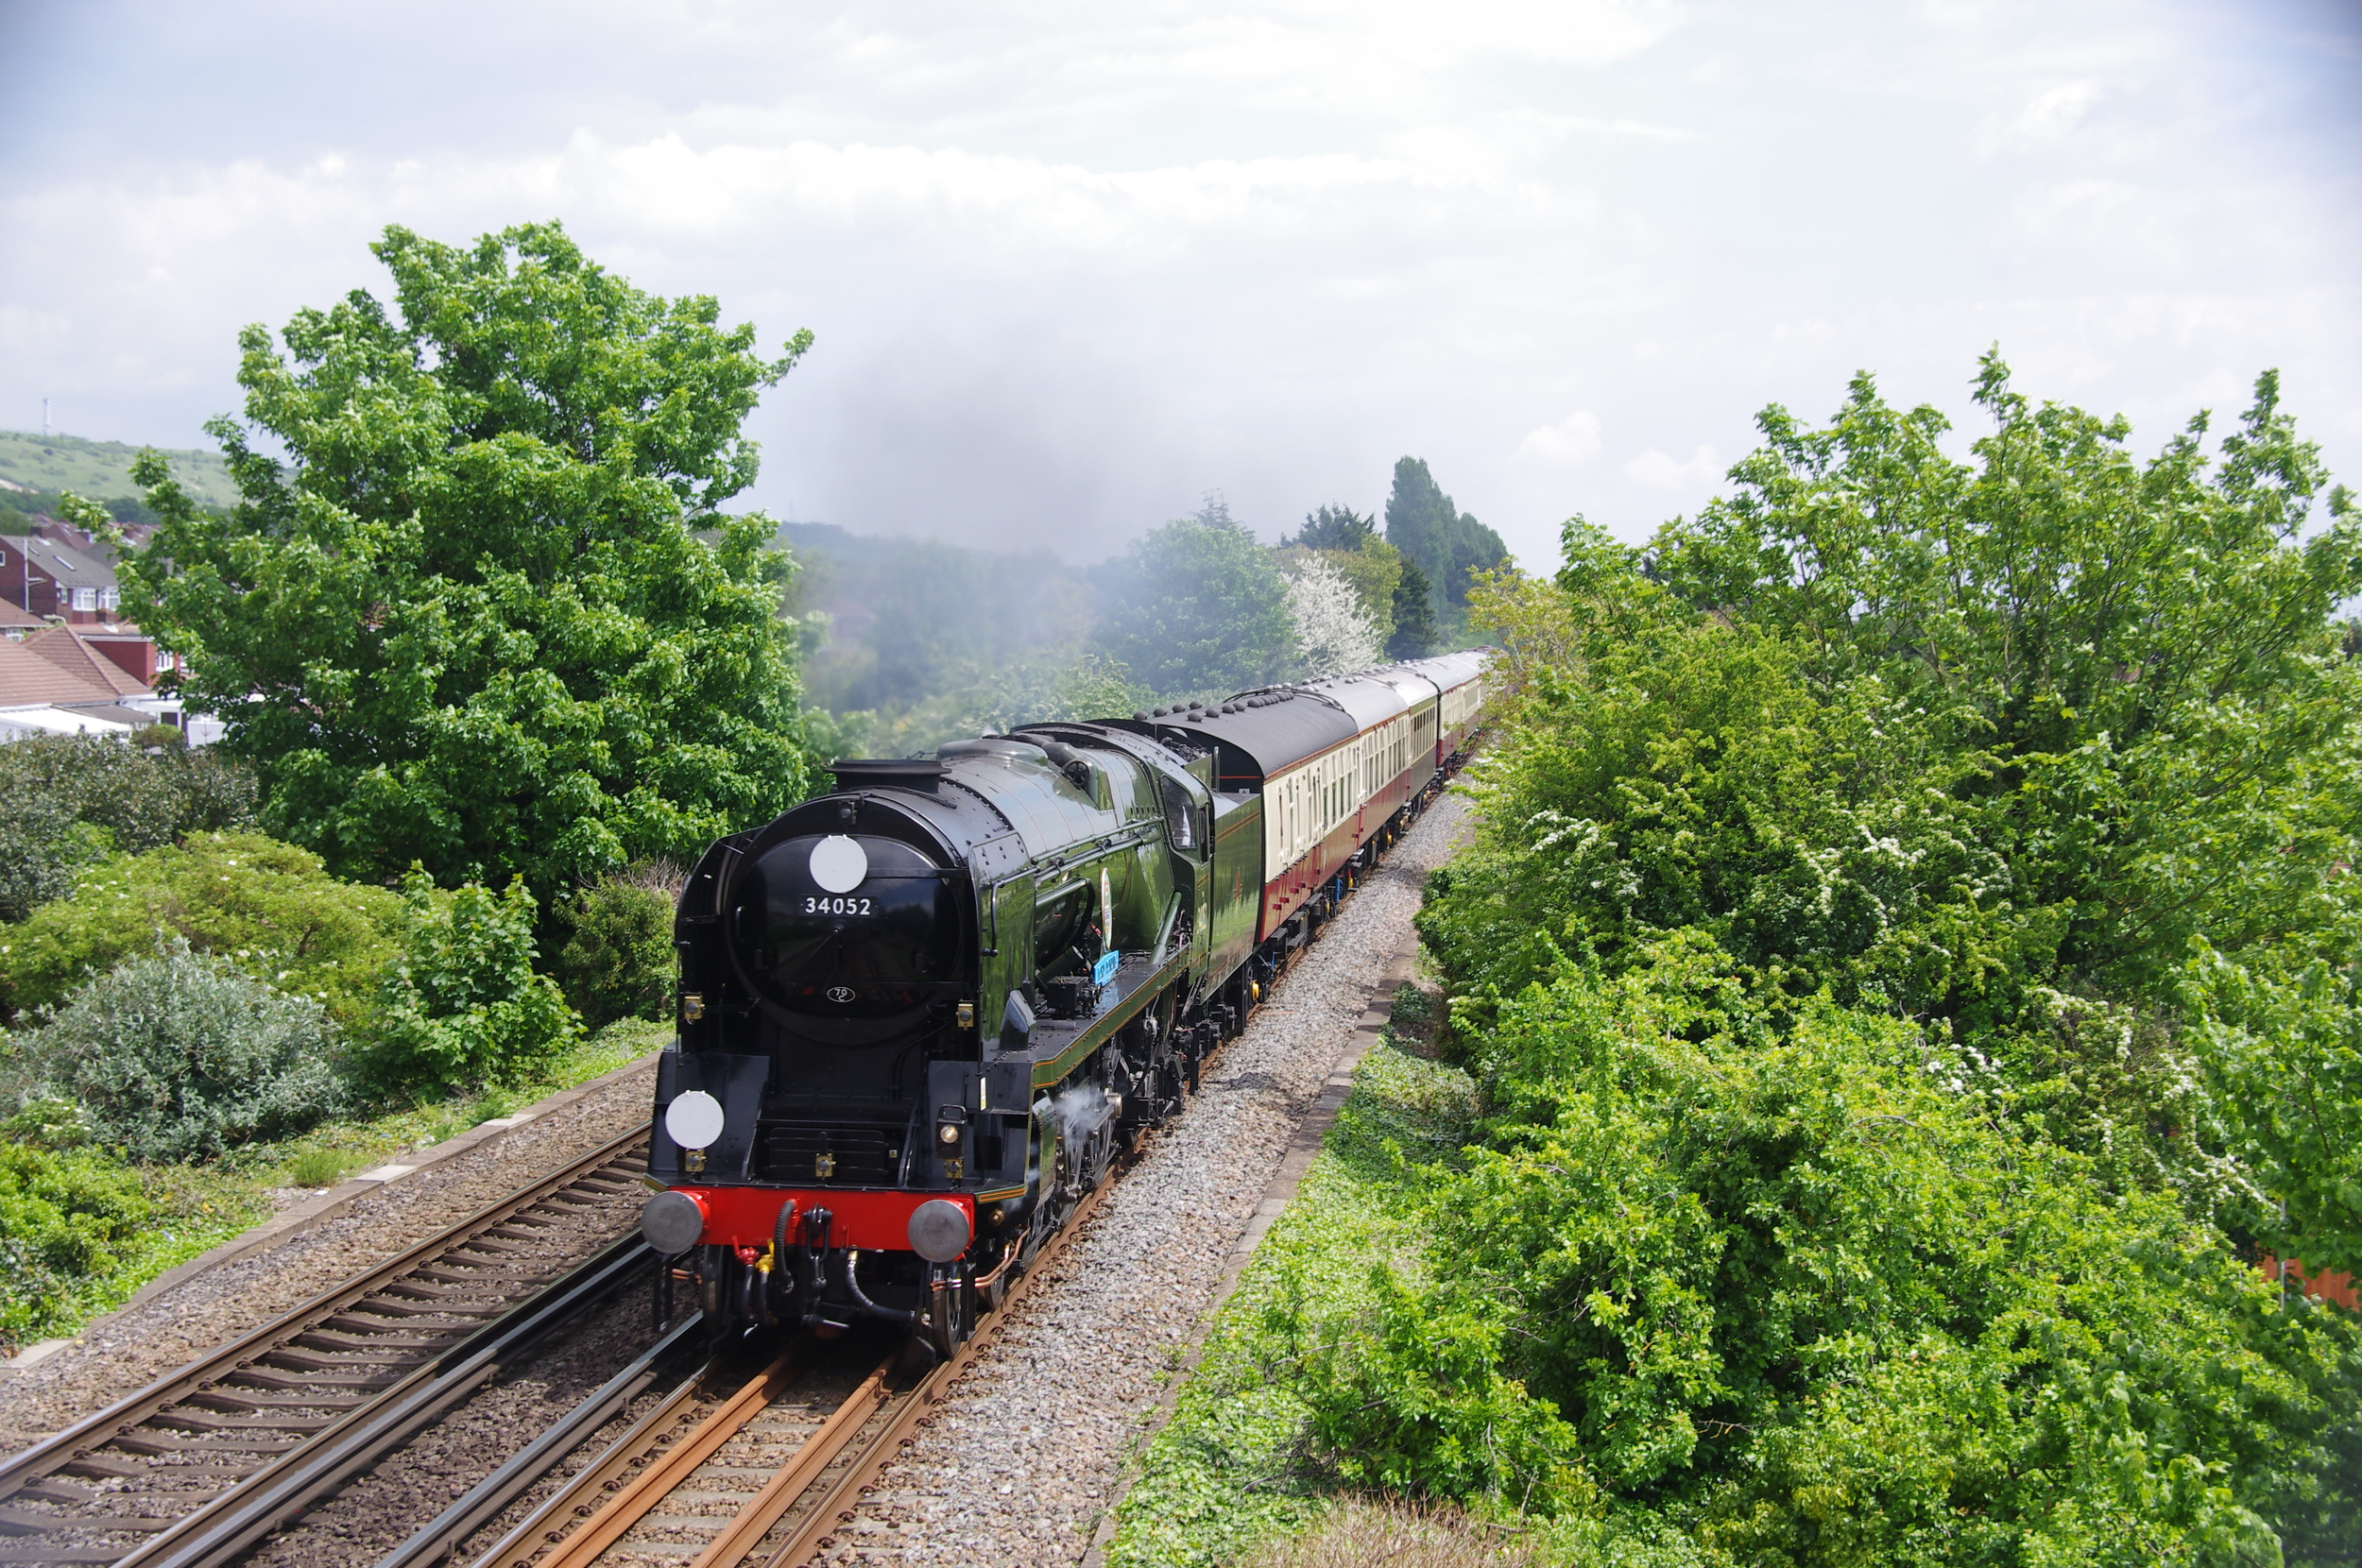 'West Country' No. 34046  Braunton, posing as 'Battle of Britain' No. 34052  Lord Dowding, approaches Portchester with the Clapham-Southampton football special on May 15. Credit: Mervyn Turvey